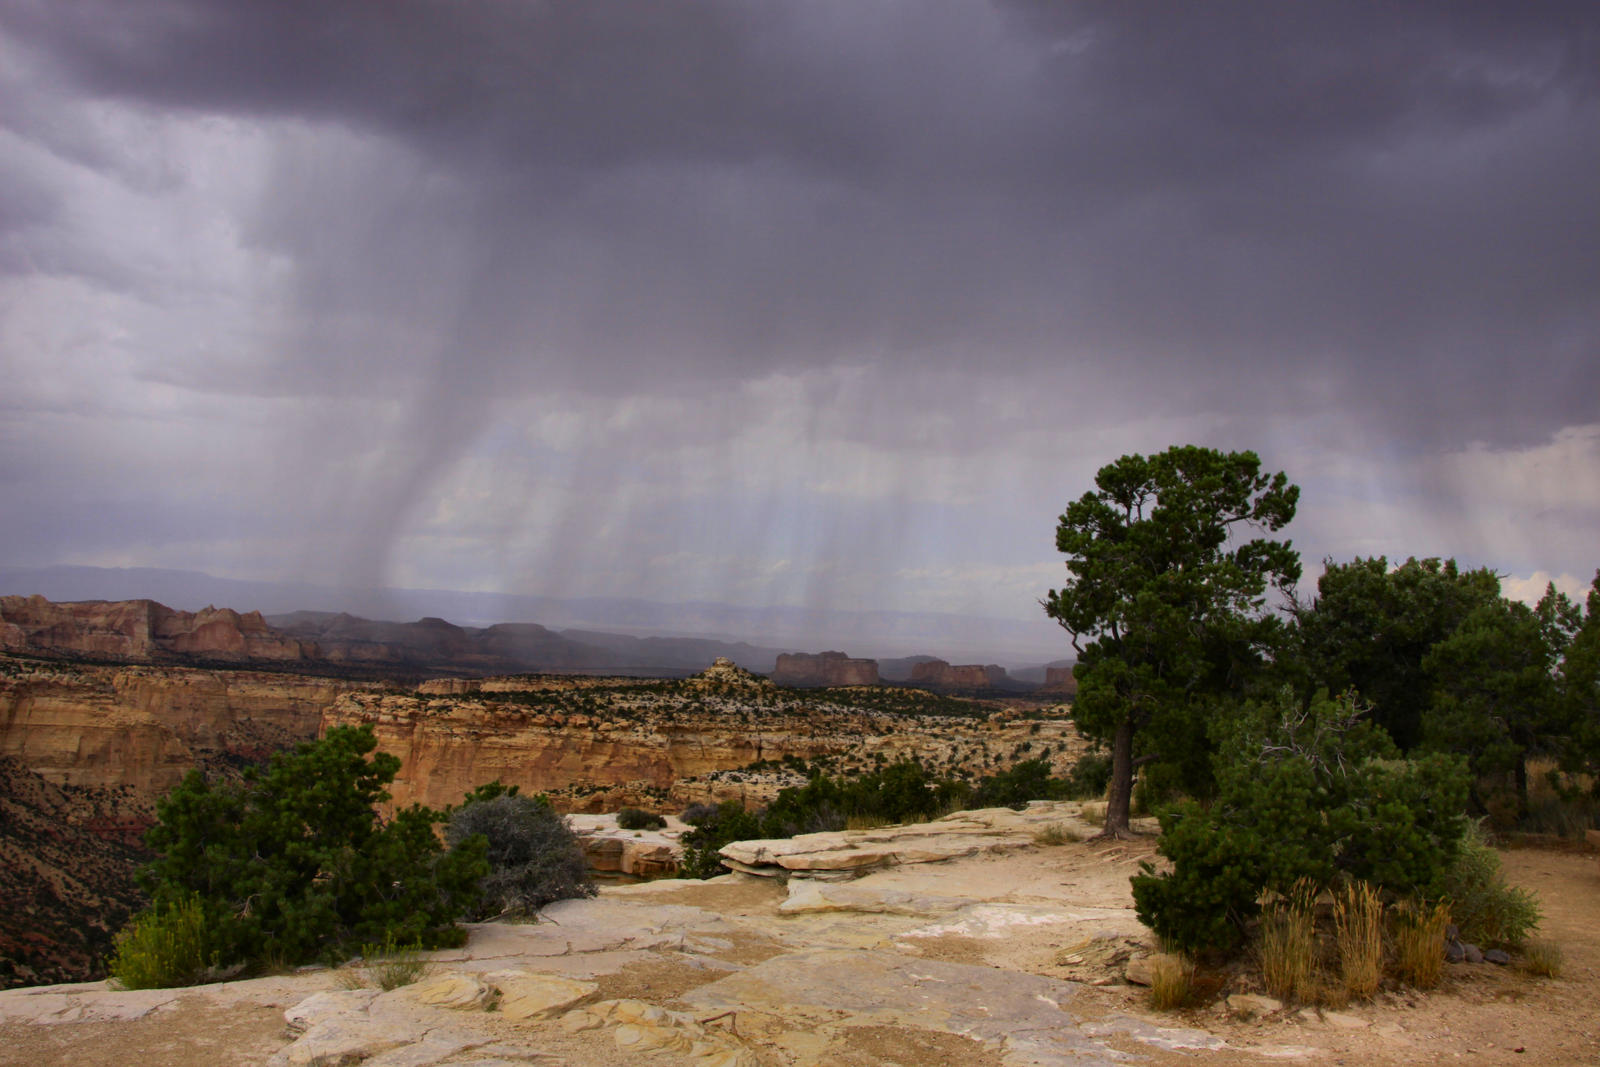 Thunderstorm near Ghost Rock by Caloxort